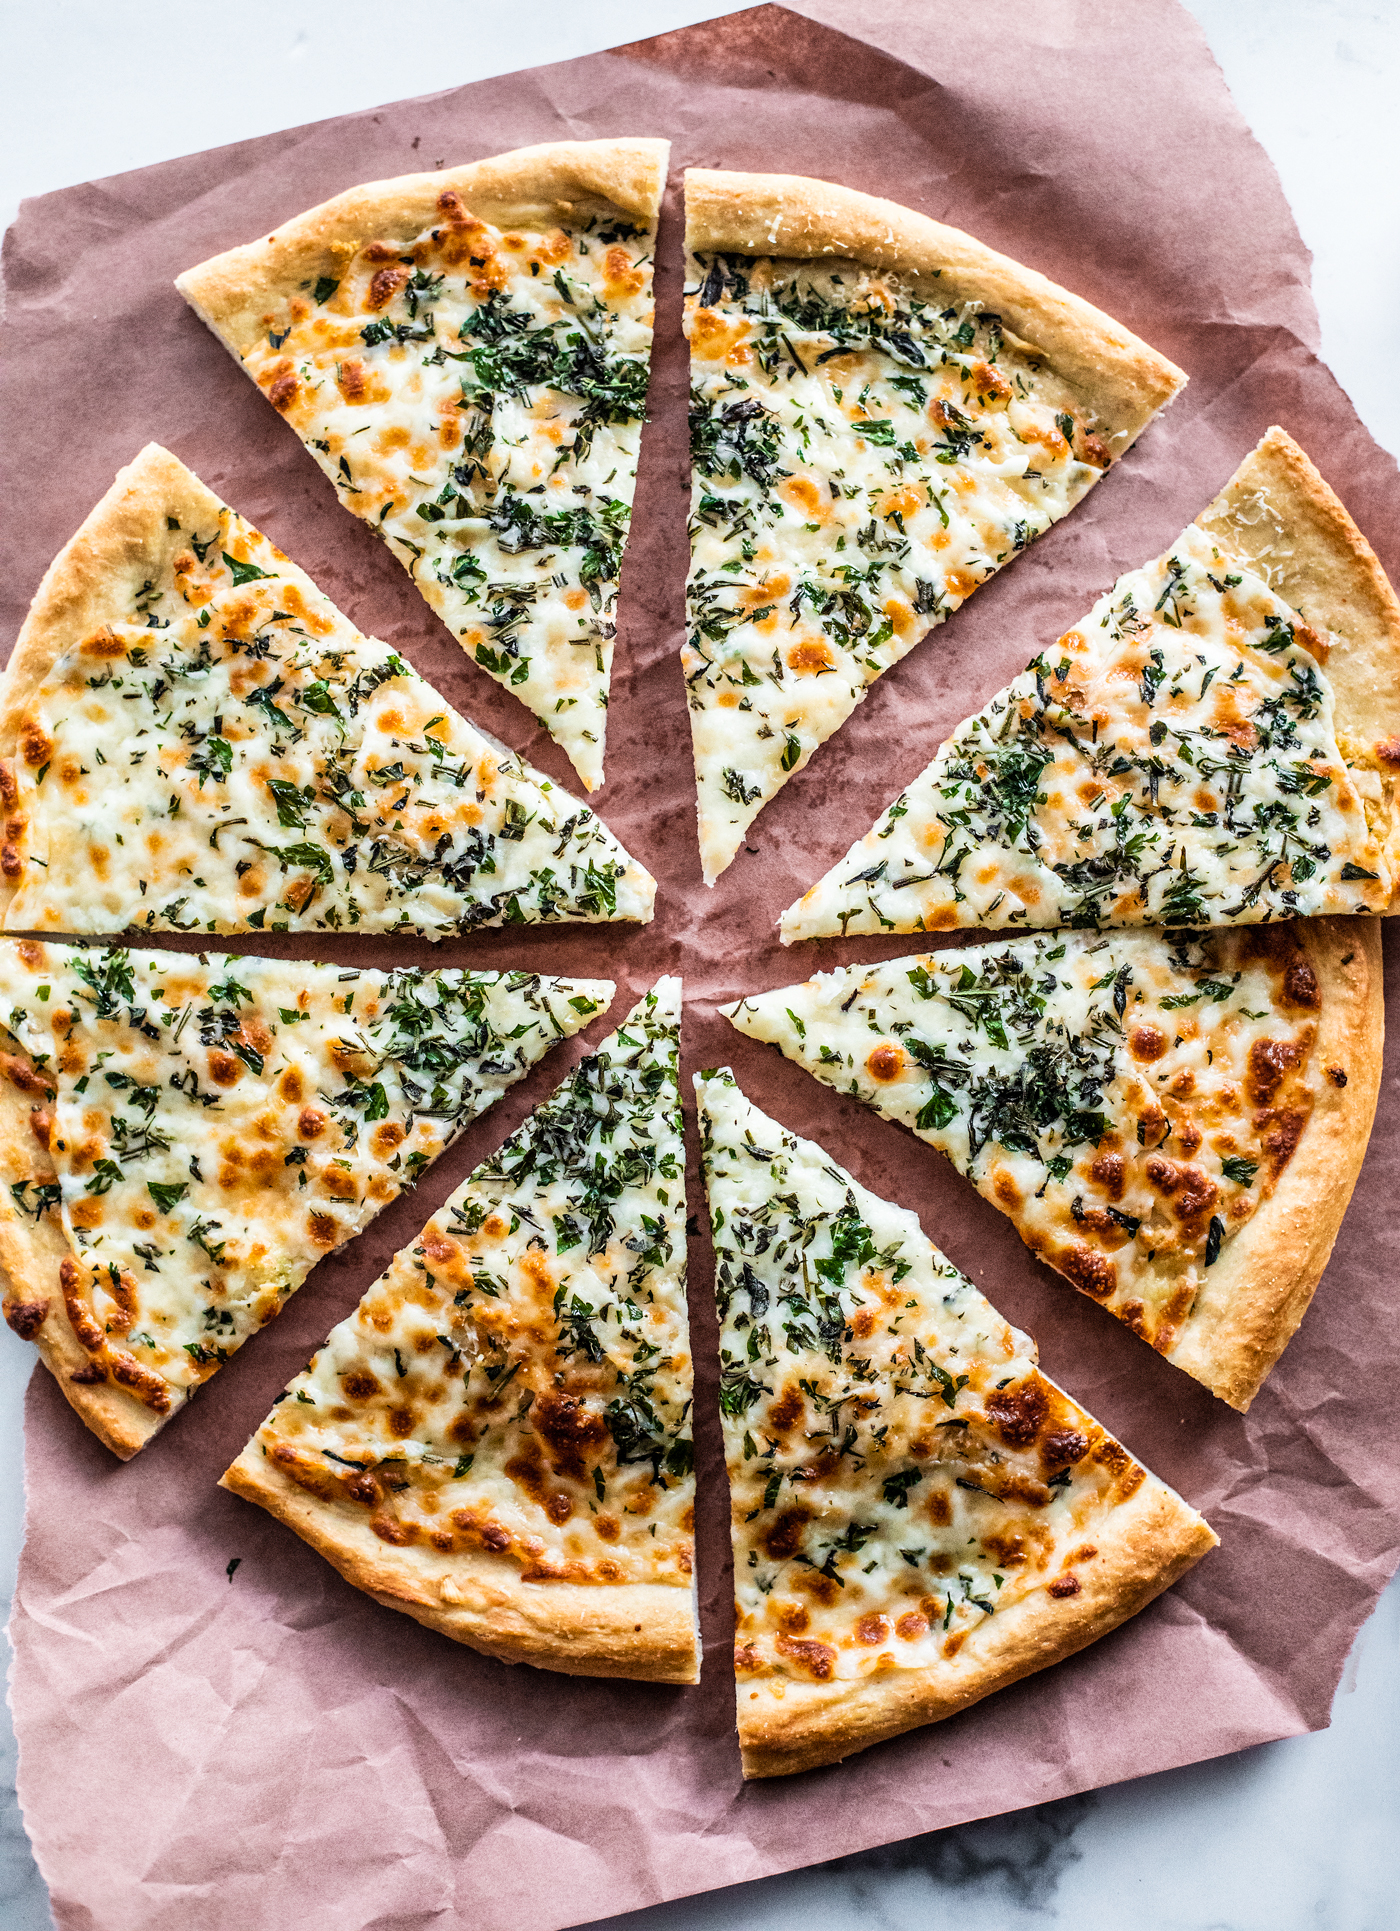 Overhead shot of cooked herb and garlic cheese pizza cut into slices on parchment paper.